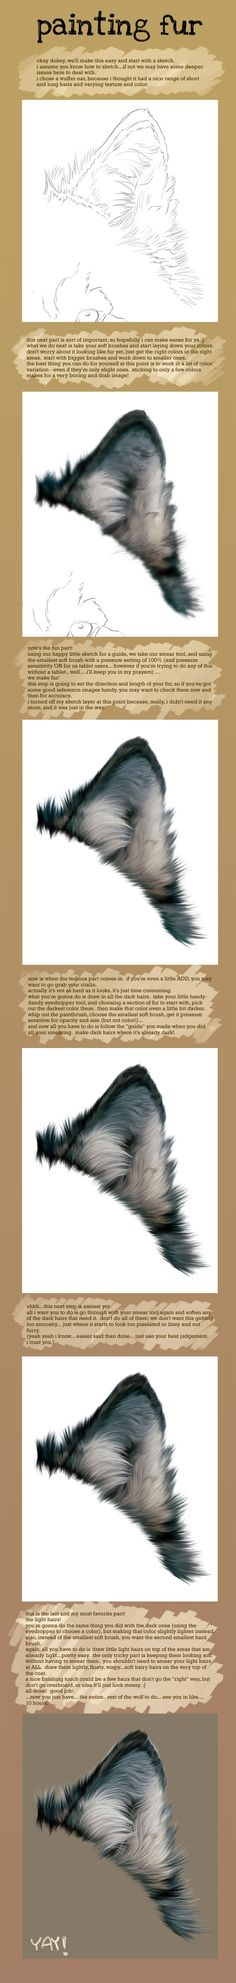 Fur Painting Tutorial by *Novawuff on deviantART via PinCG.com